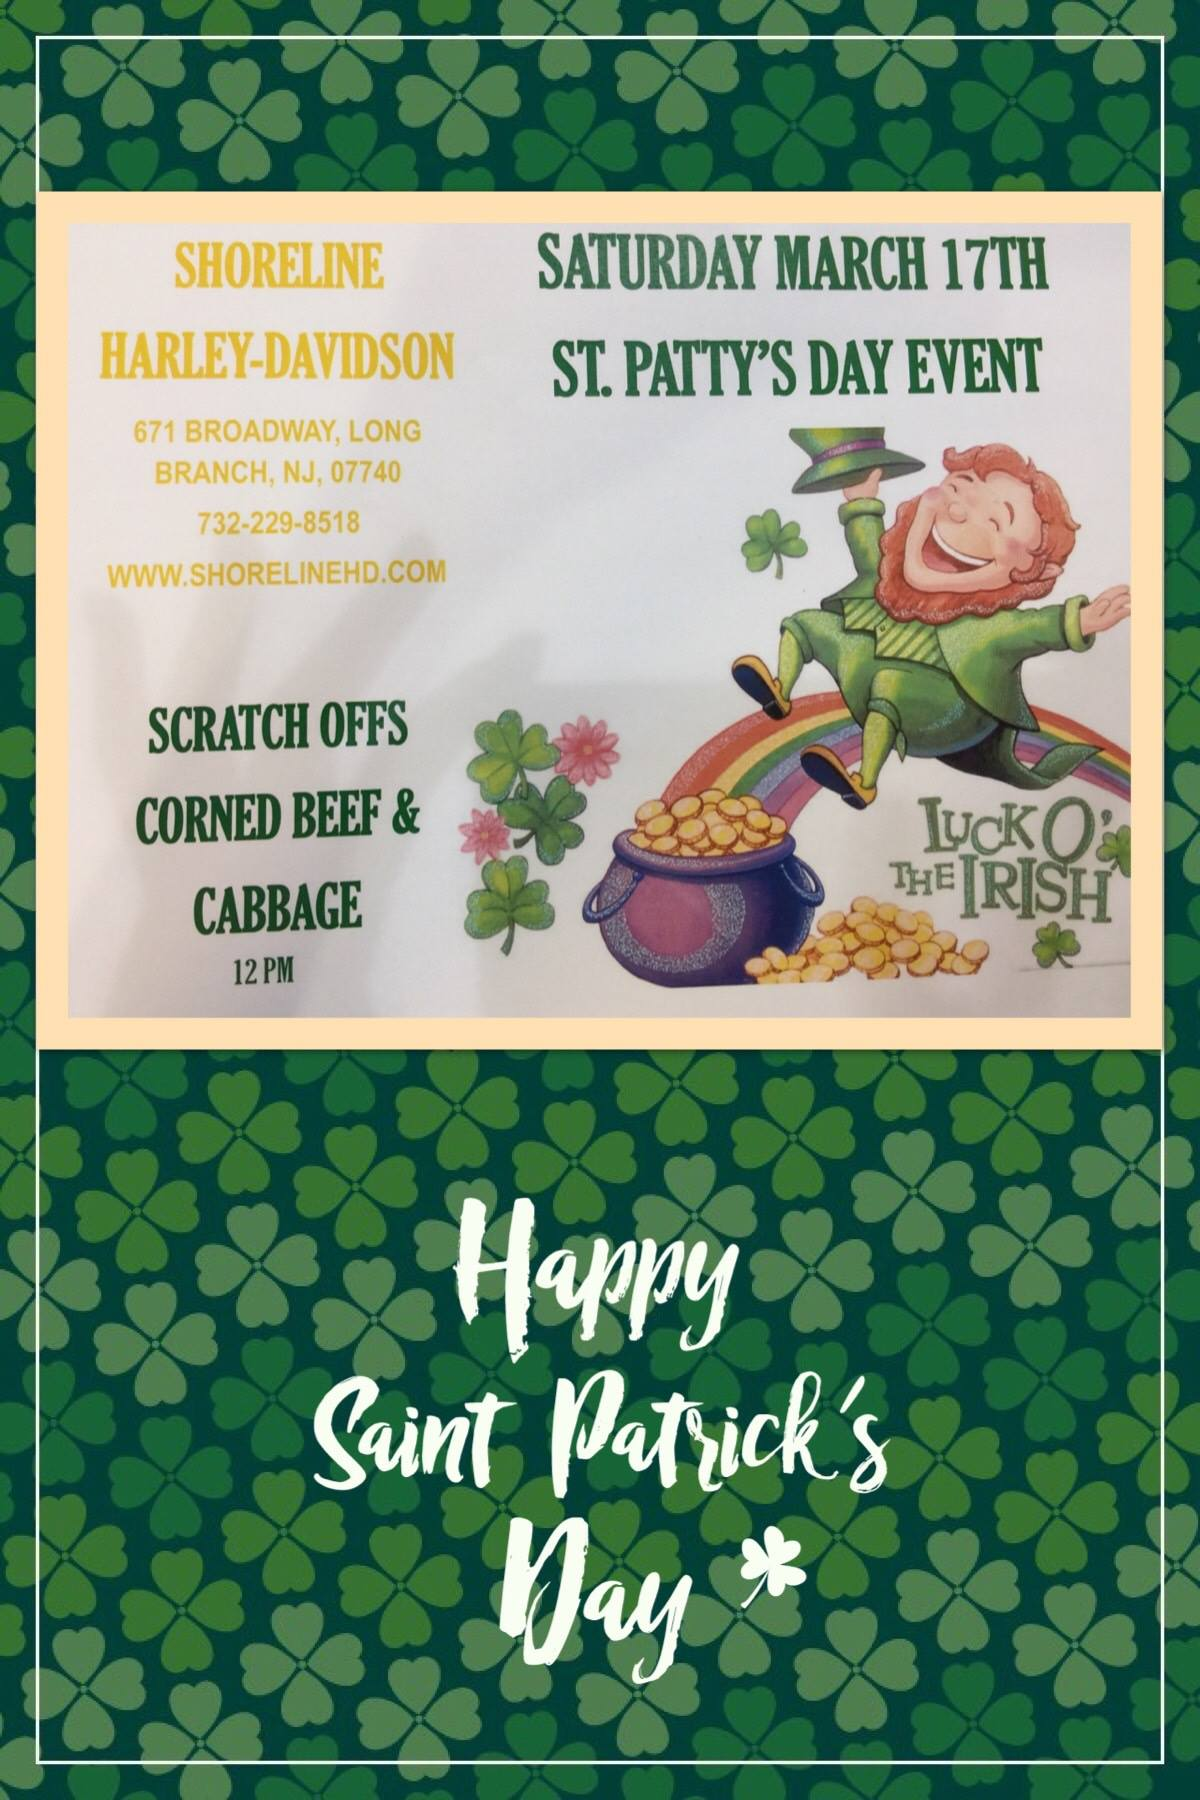 🍀 SAVE THE DATE!! 🍀 Saturday March 17th is our St.Paddy's Day Event!! We will be serving corned beef & cabbage, along with scratch offs to save you the most of your 💵!! Wear green with us & GET YOUR IRISH ON!